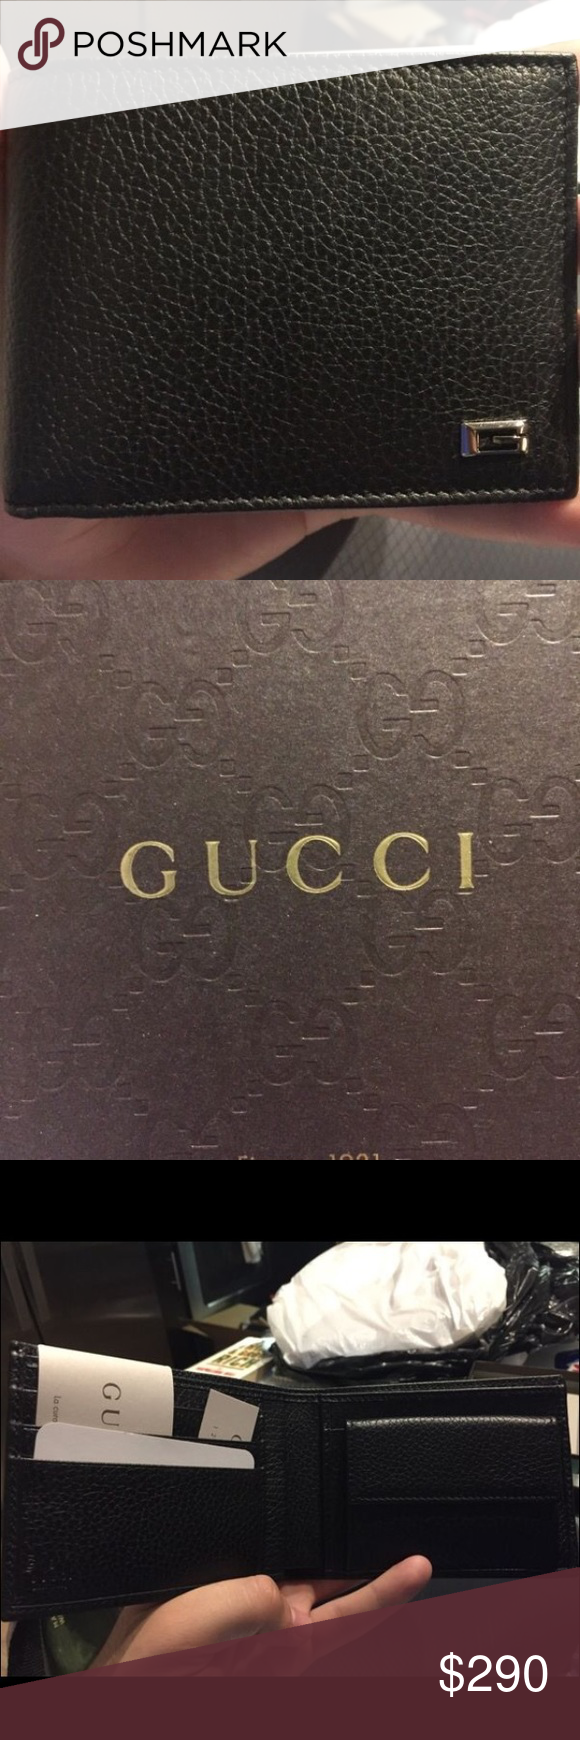 Gucci Wallet Brand new, AUTHENTIC, never used Gucci wallet